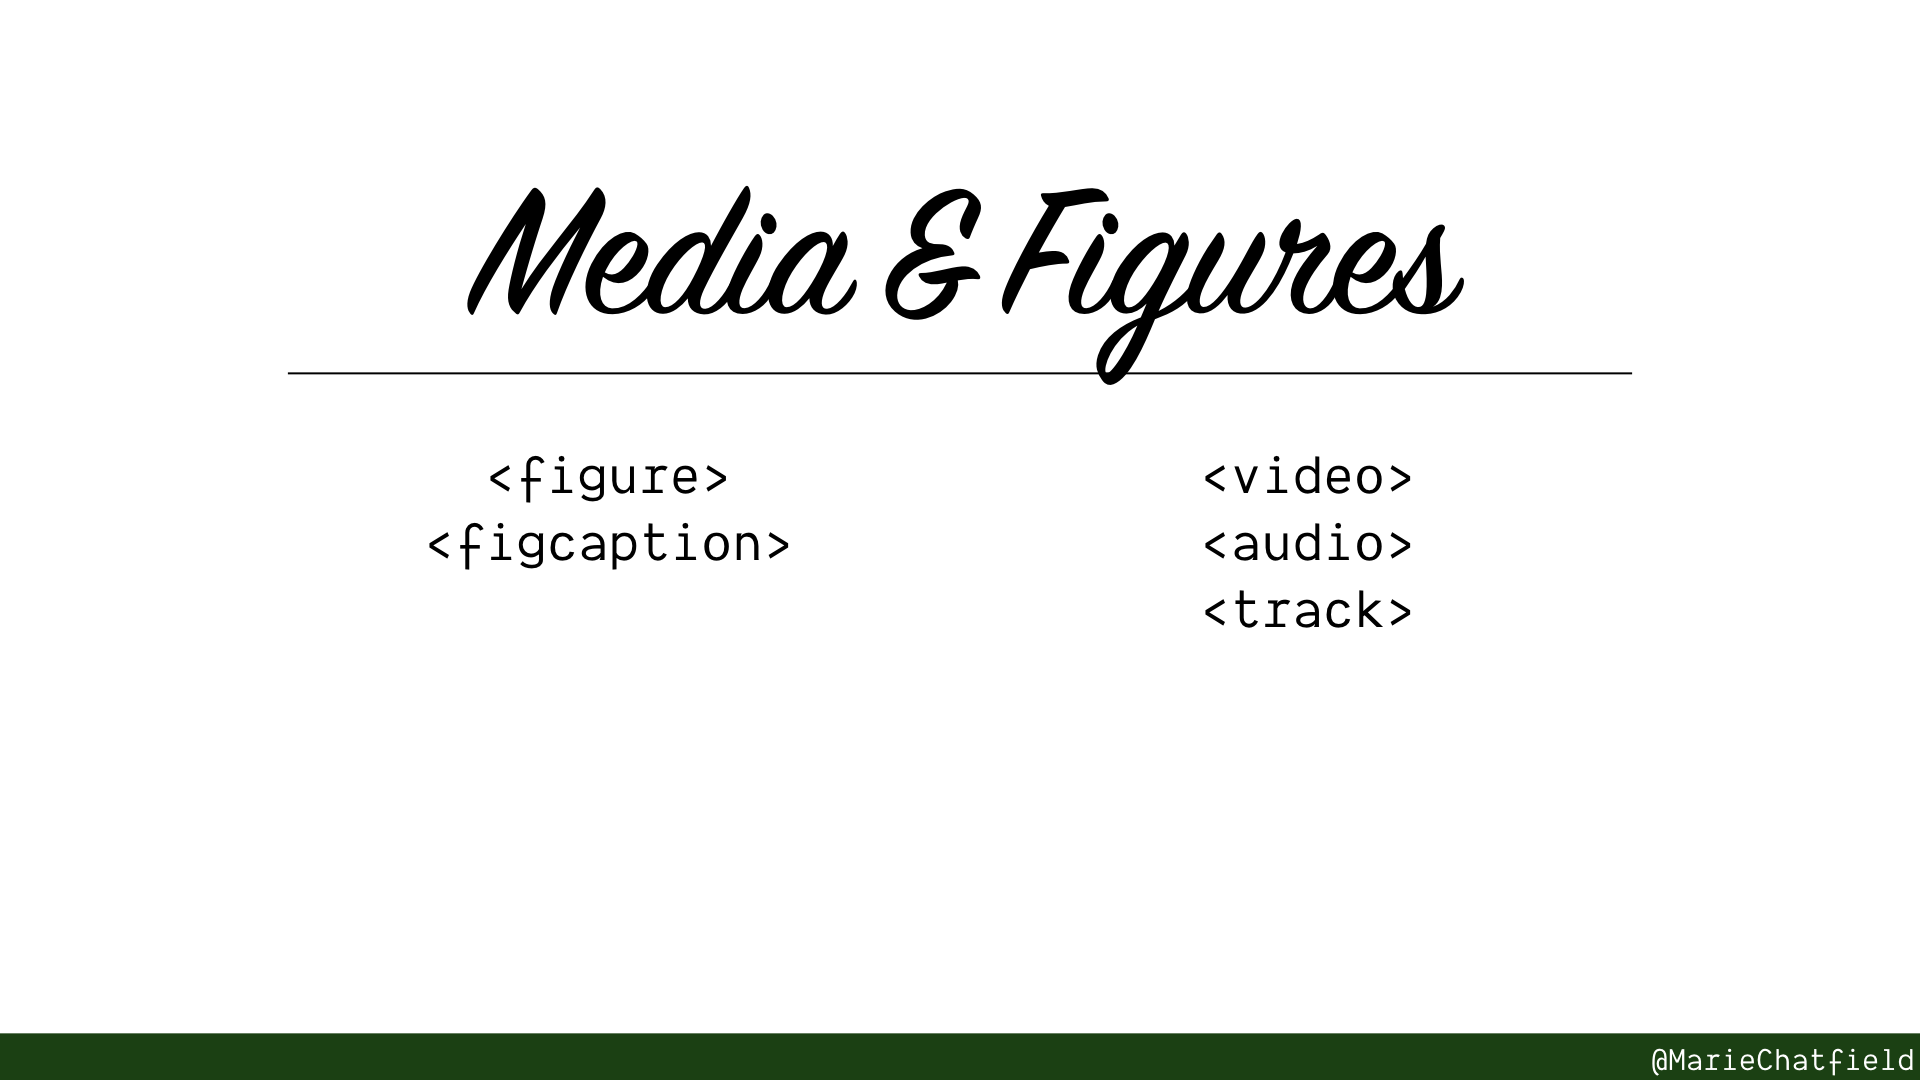 Slide of Media & Figures with HTML elements listed